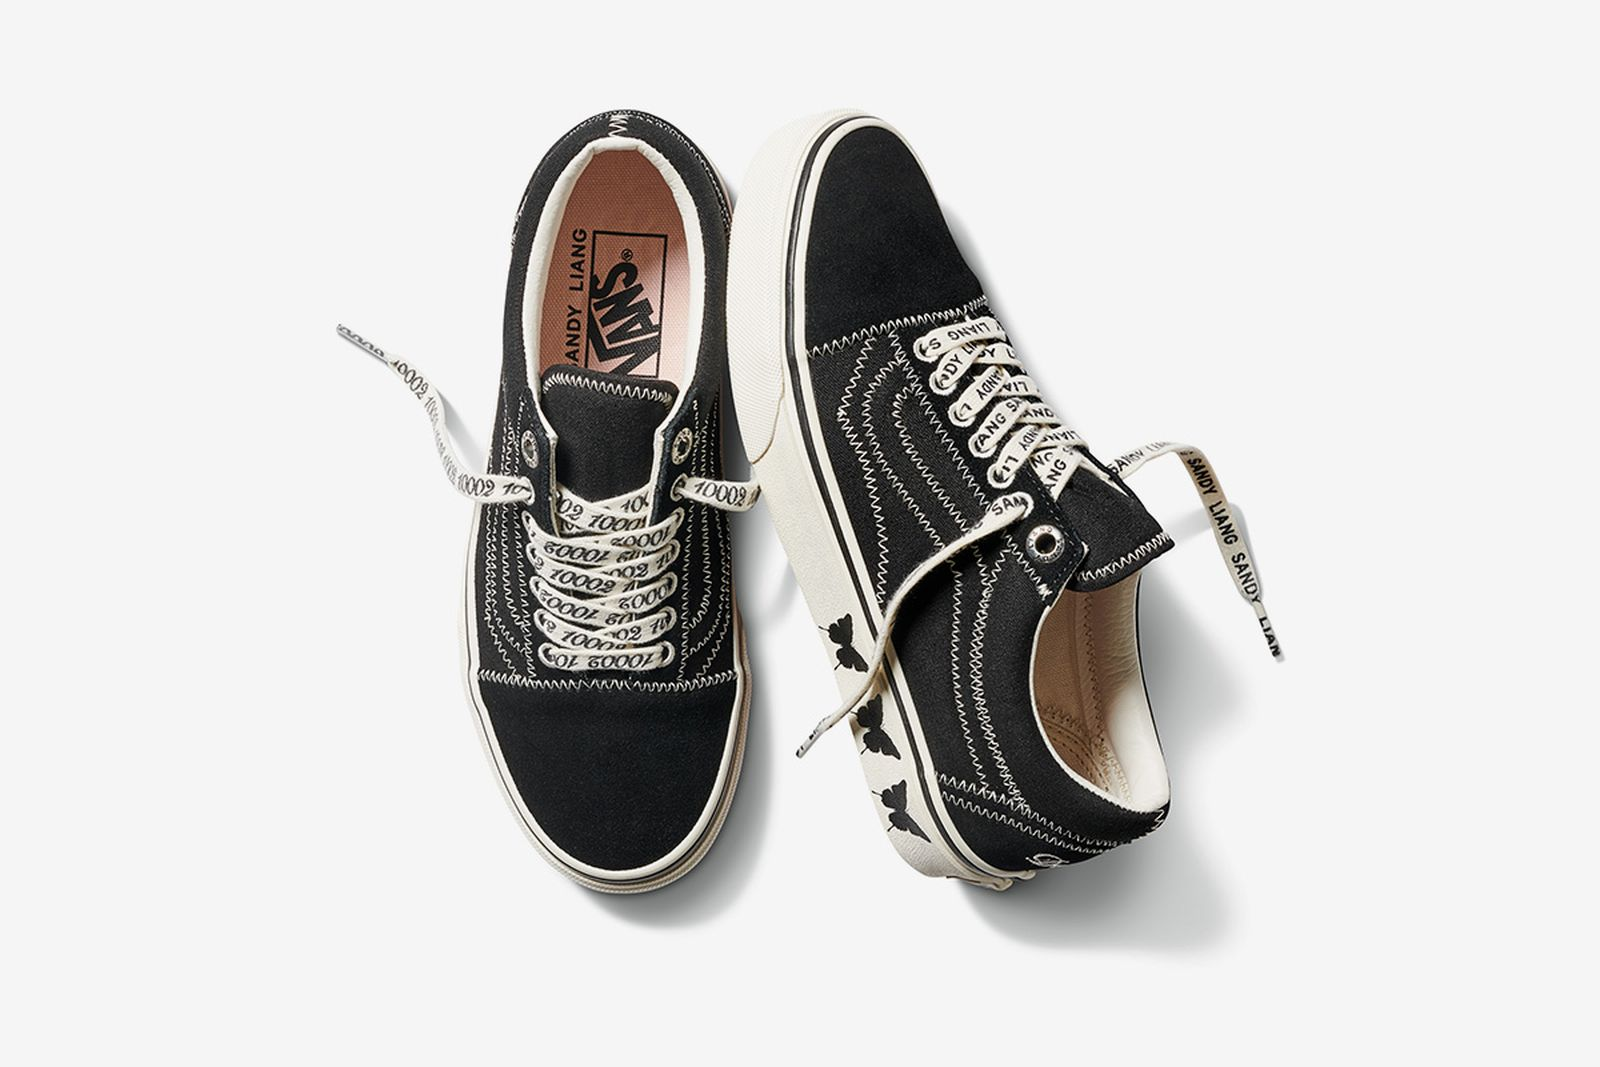 sandy-liang-vans-collection-release-date-price-1-17